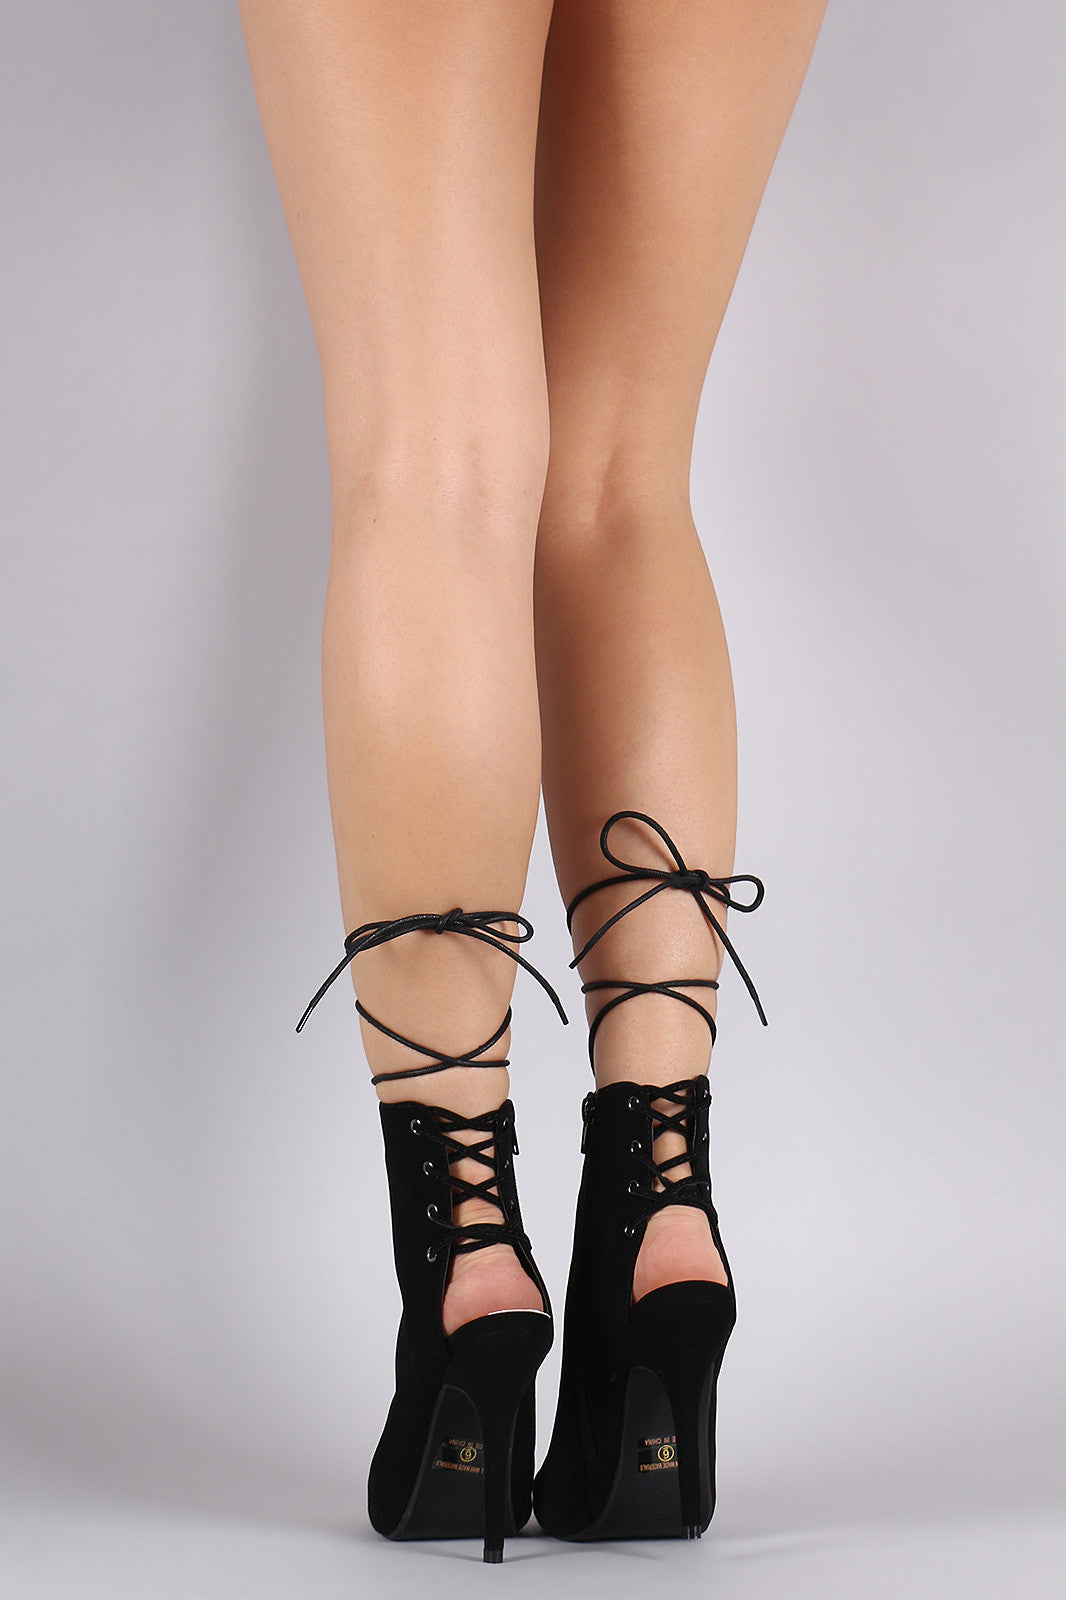 Nubuck Corset Lace Up Peep Toe Stiletto Booties - Thick 'N' Curvy Shop - 3